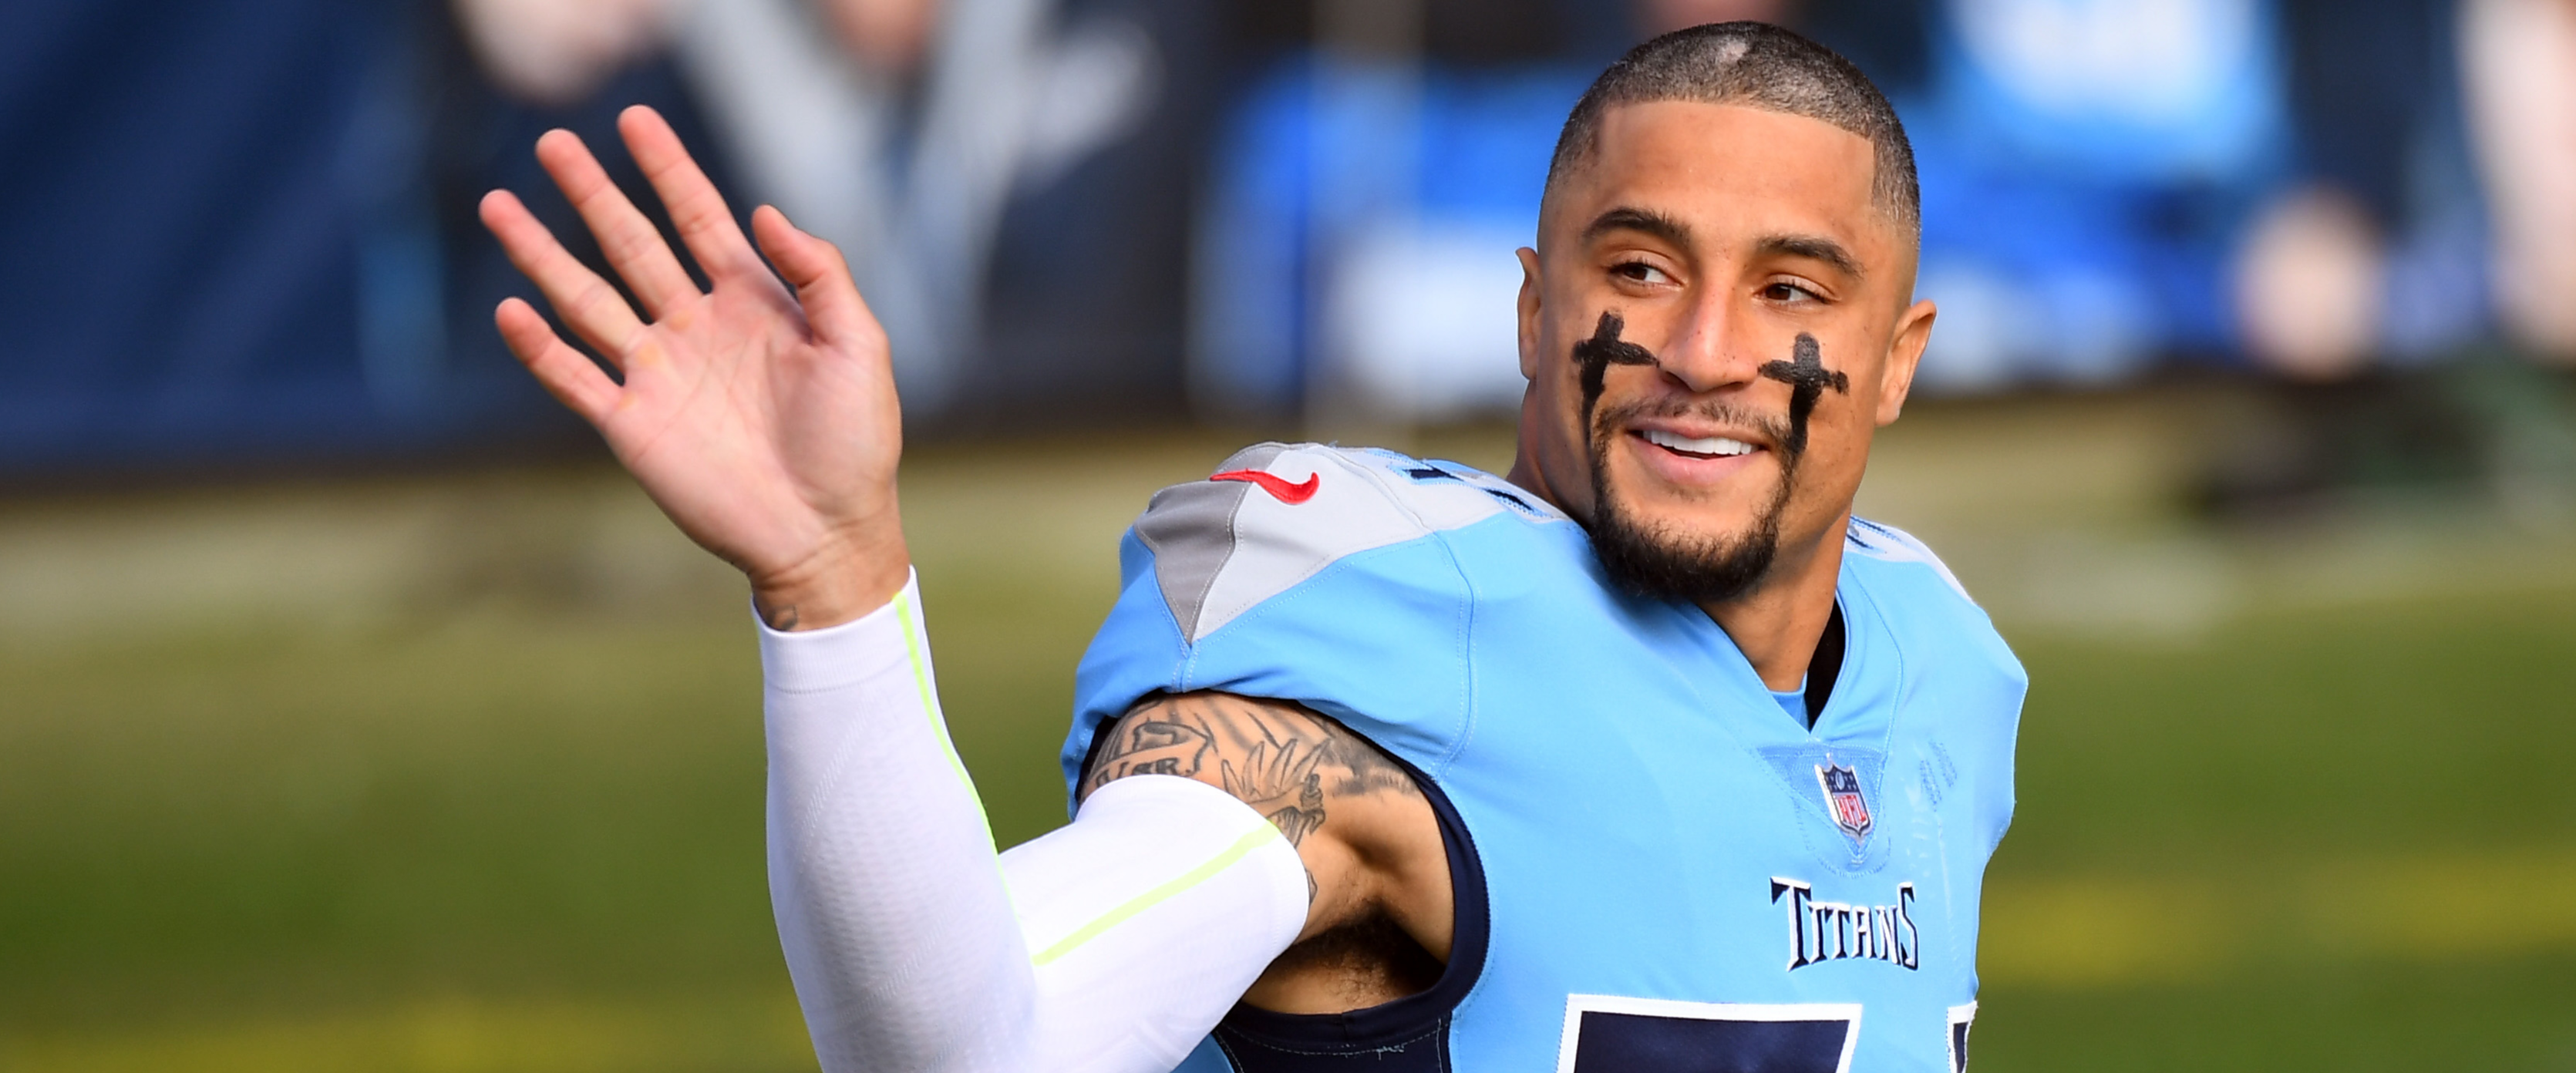 Titans: A defensive rebuild? Or clearing cap space?